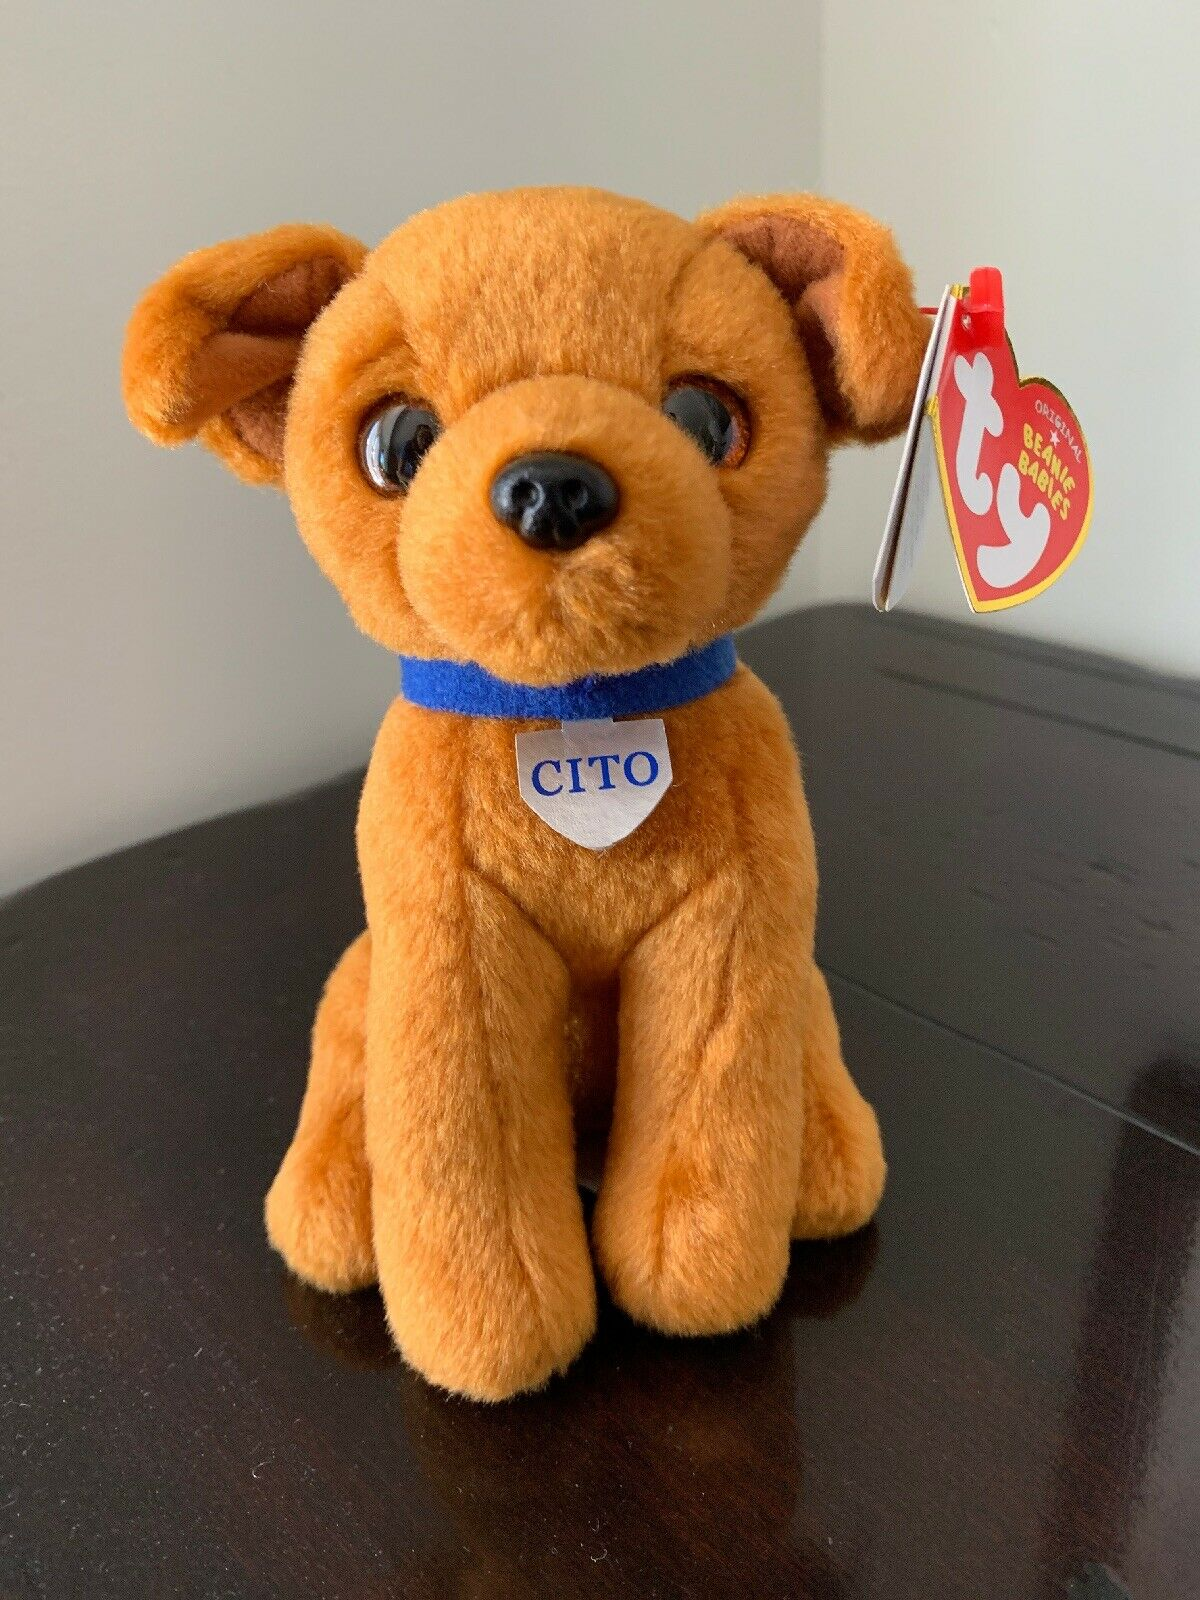 Cito Beanie Baby - limited edition